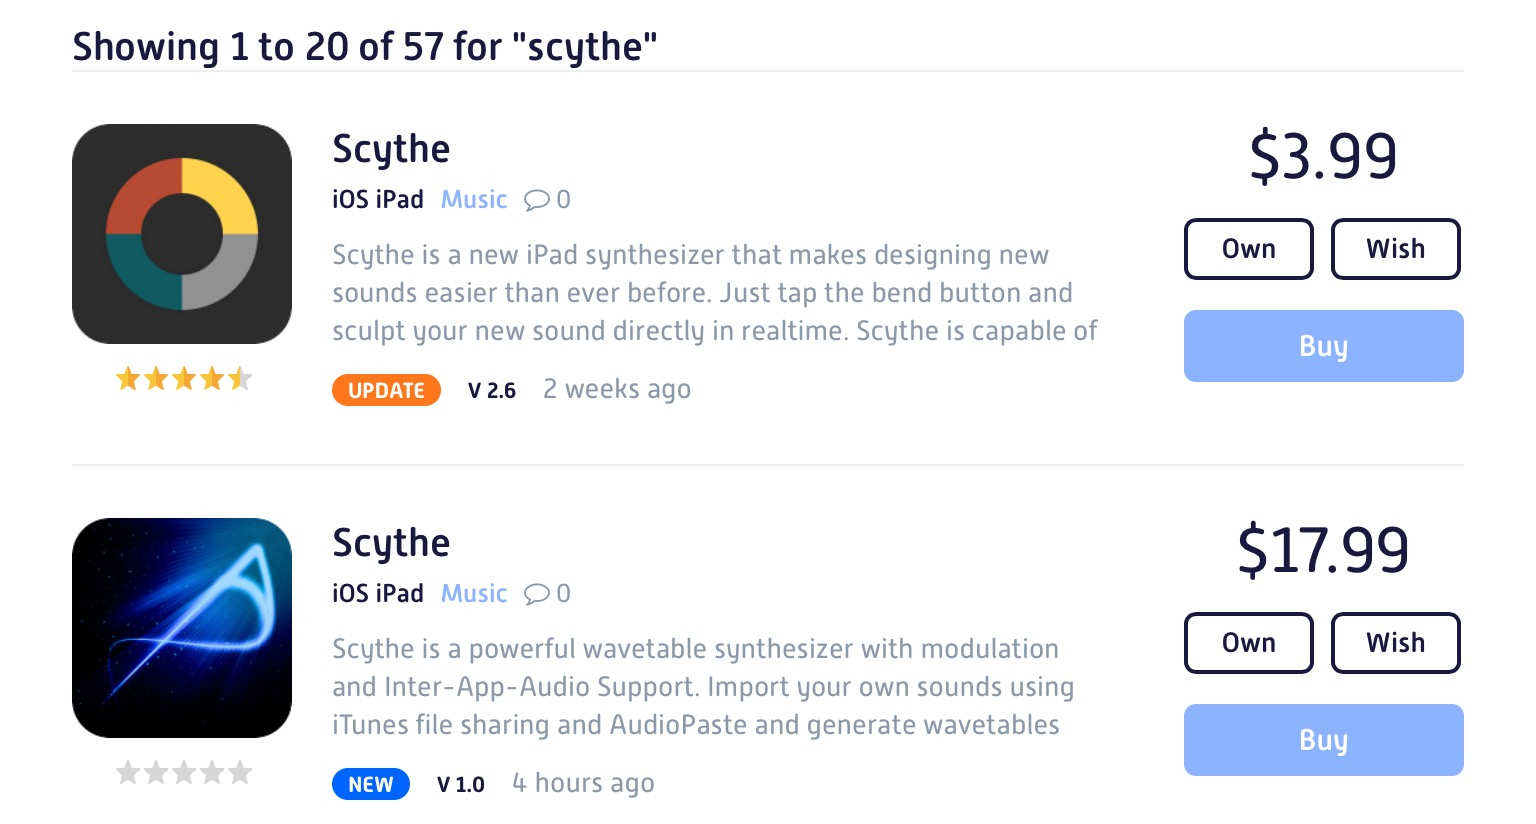 Scythe: A new wavetable synth with duplicate name in App